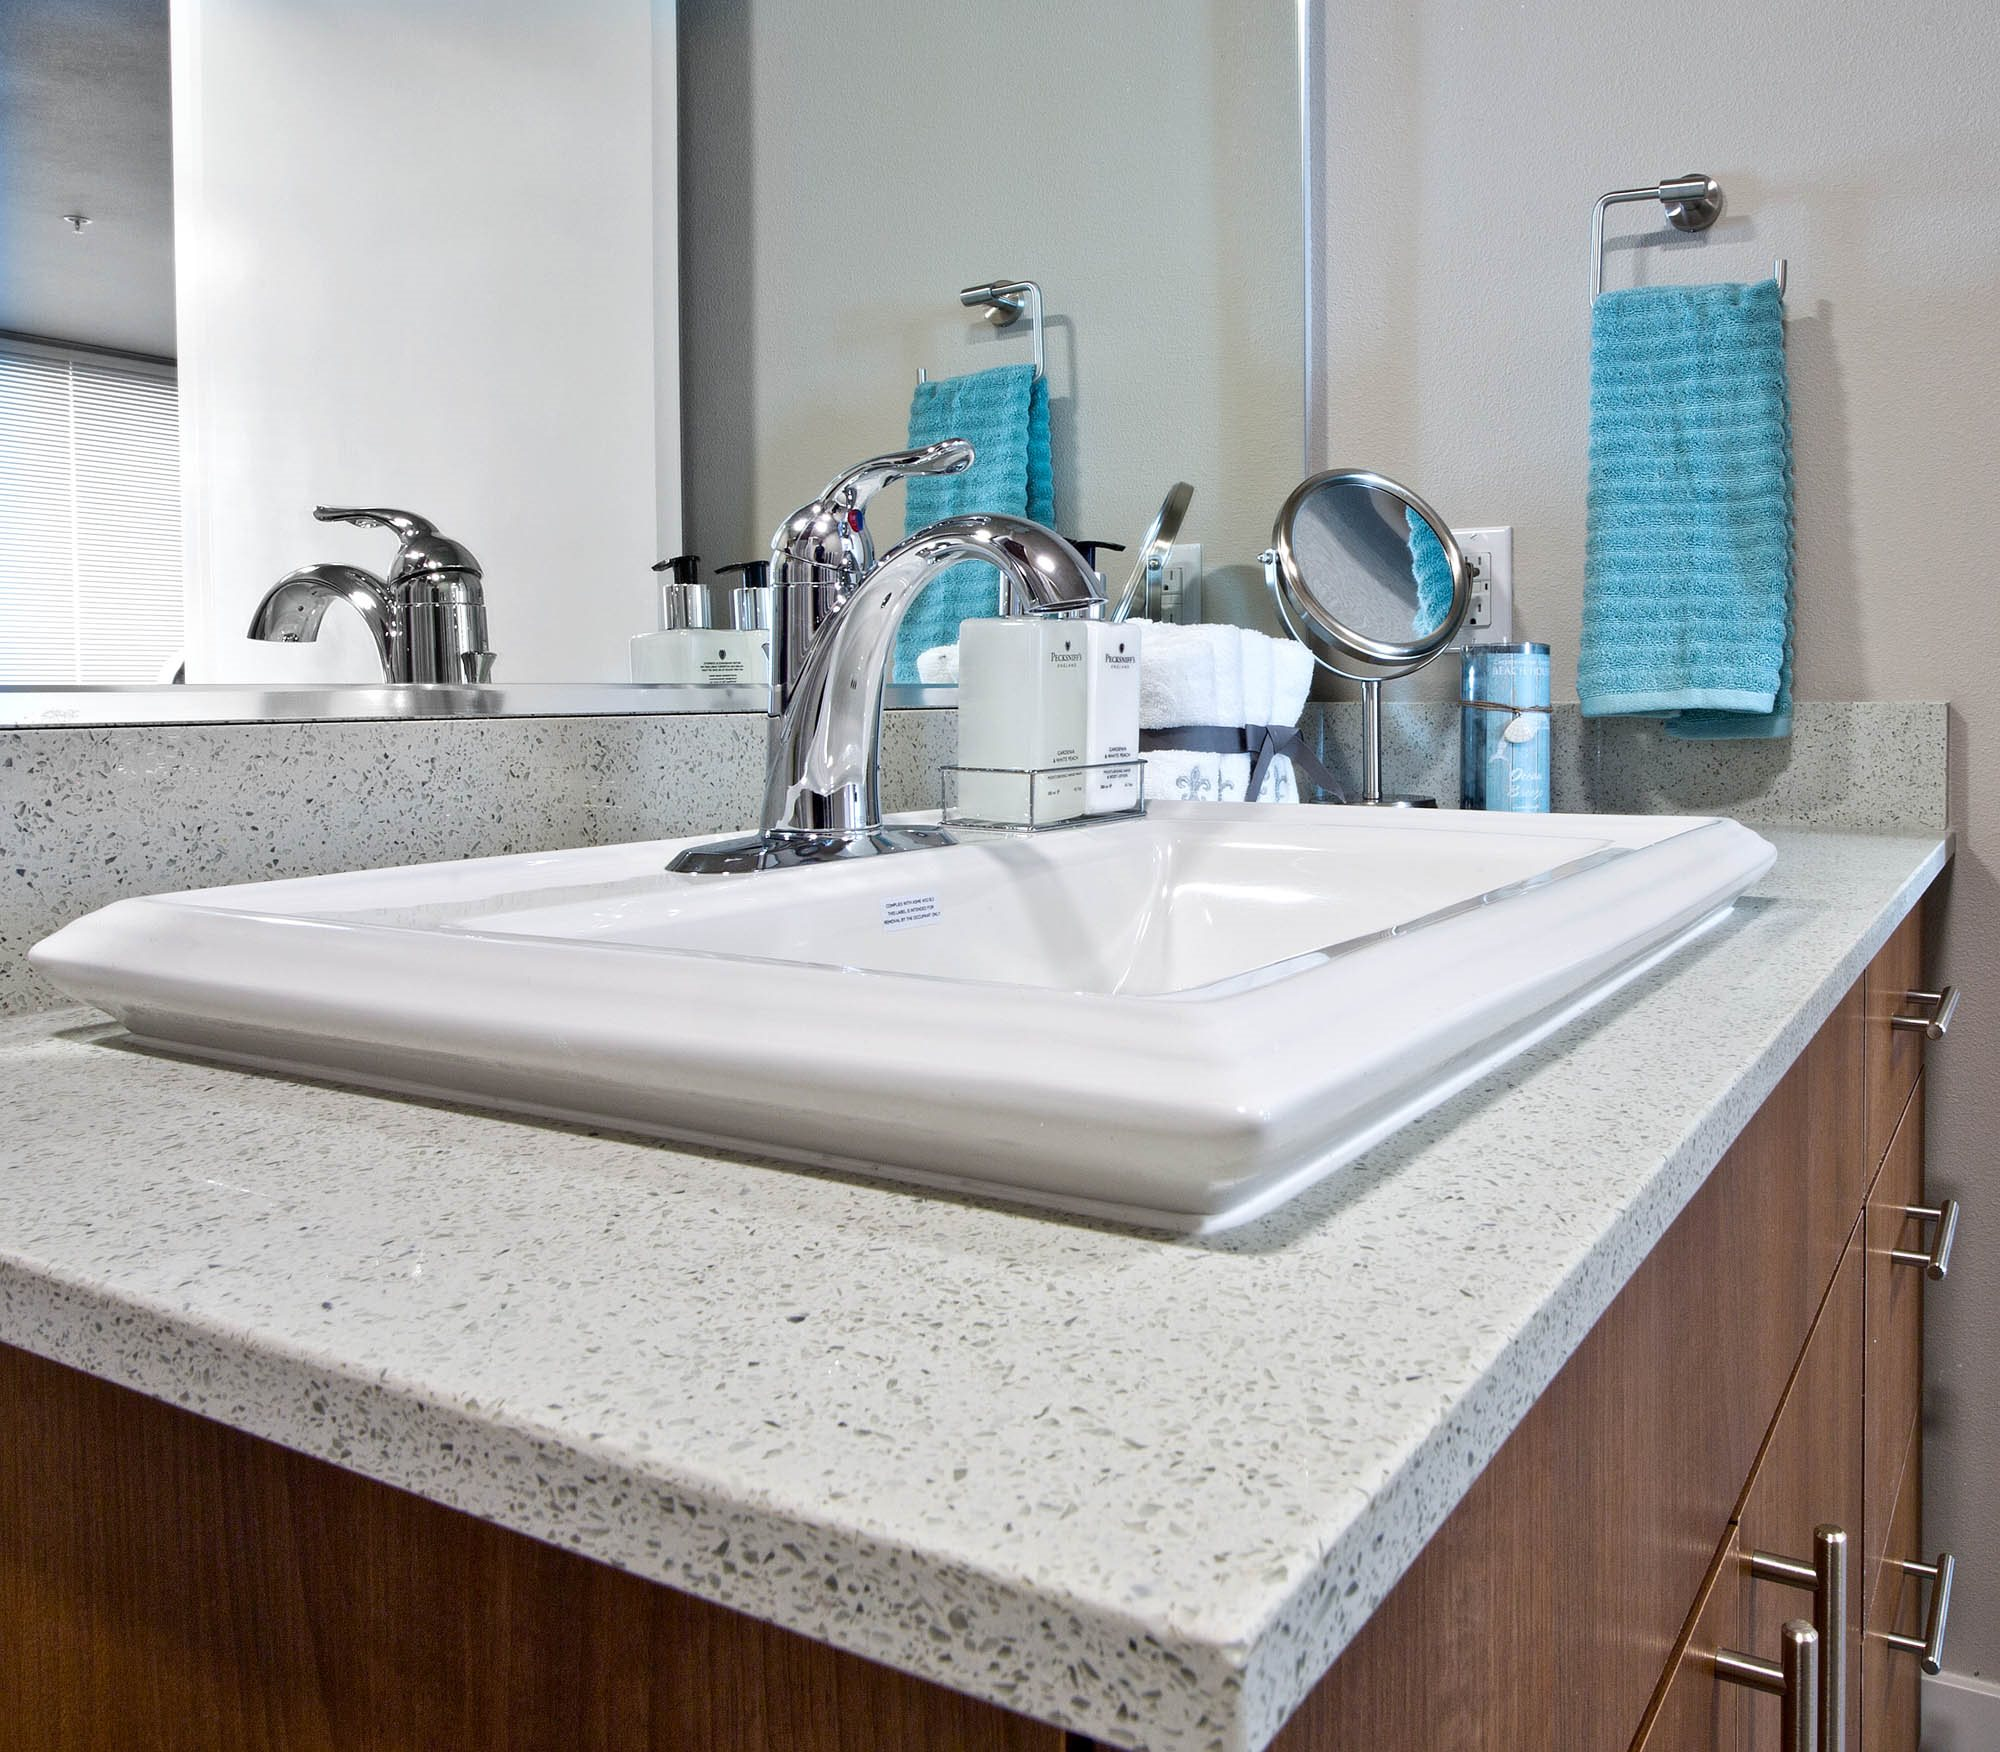 Designer granite countertops in all bathrooms